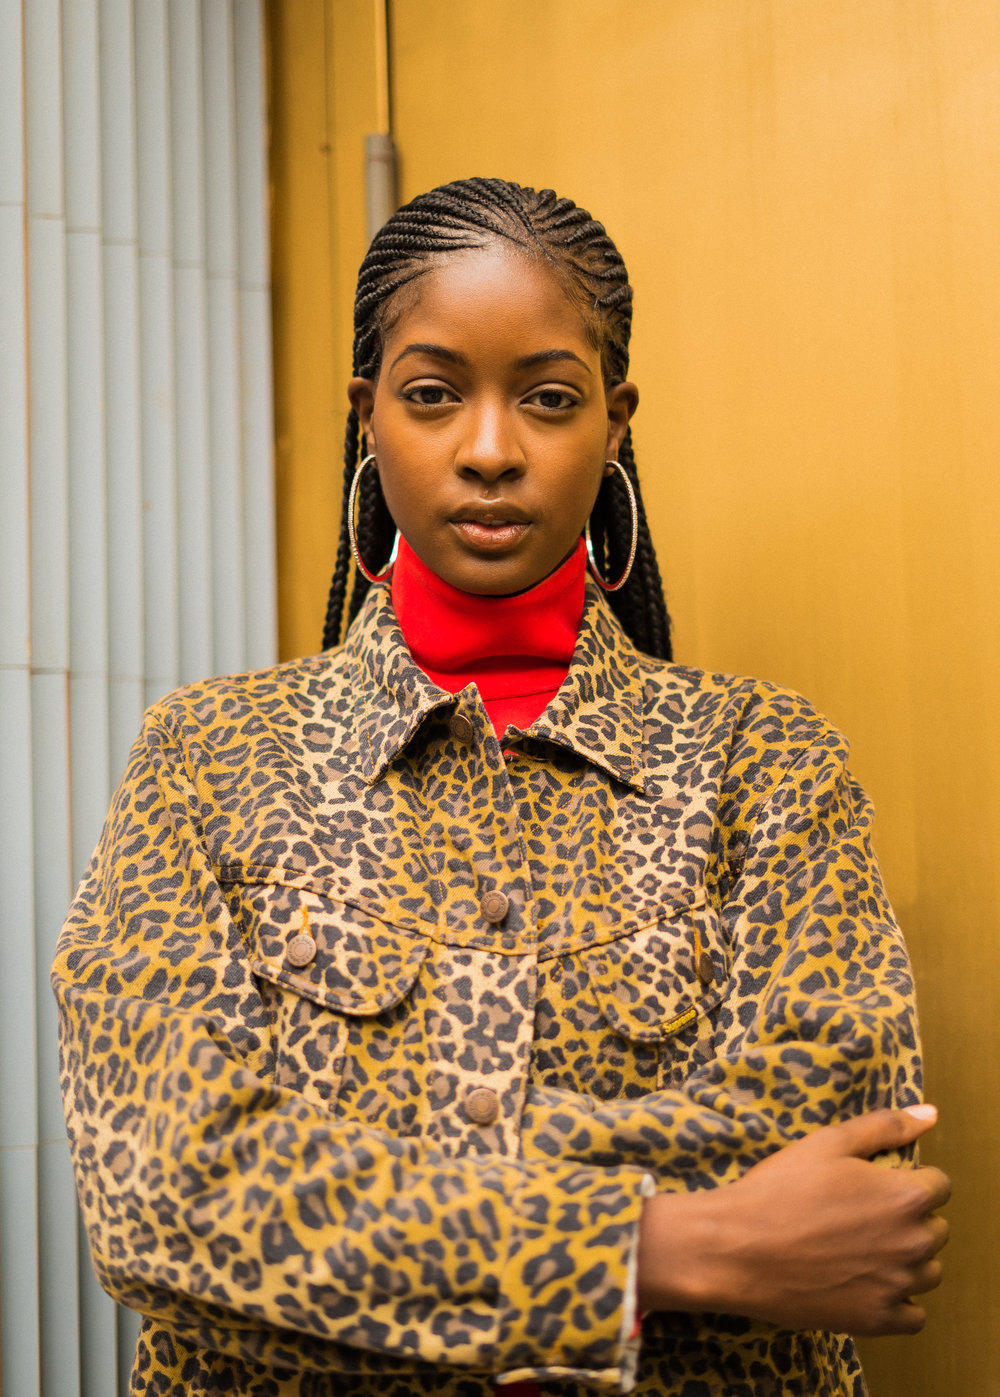 SIRA KANTE - Sira Kante is a 21 year old Guinean model based in New York City, known for her brand Ink My Africa. In 2015, A DAY LIVING became Sira's management and creative team, building content and structuring her brand. Through our guidance, Sira's social presence and career grew.